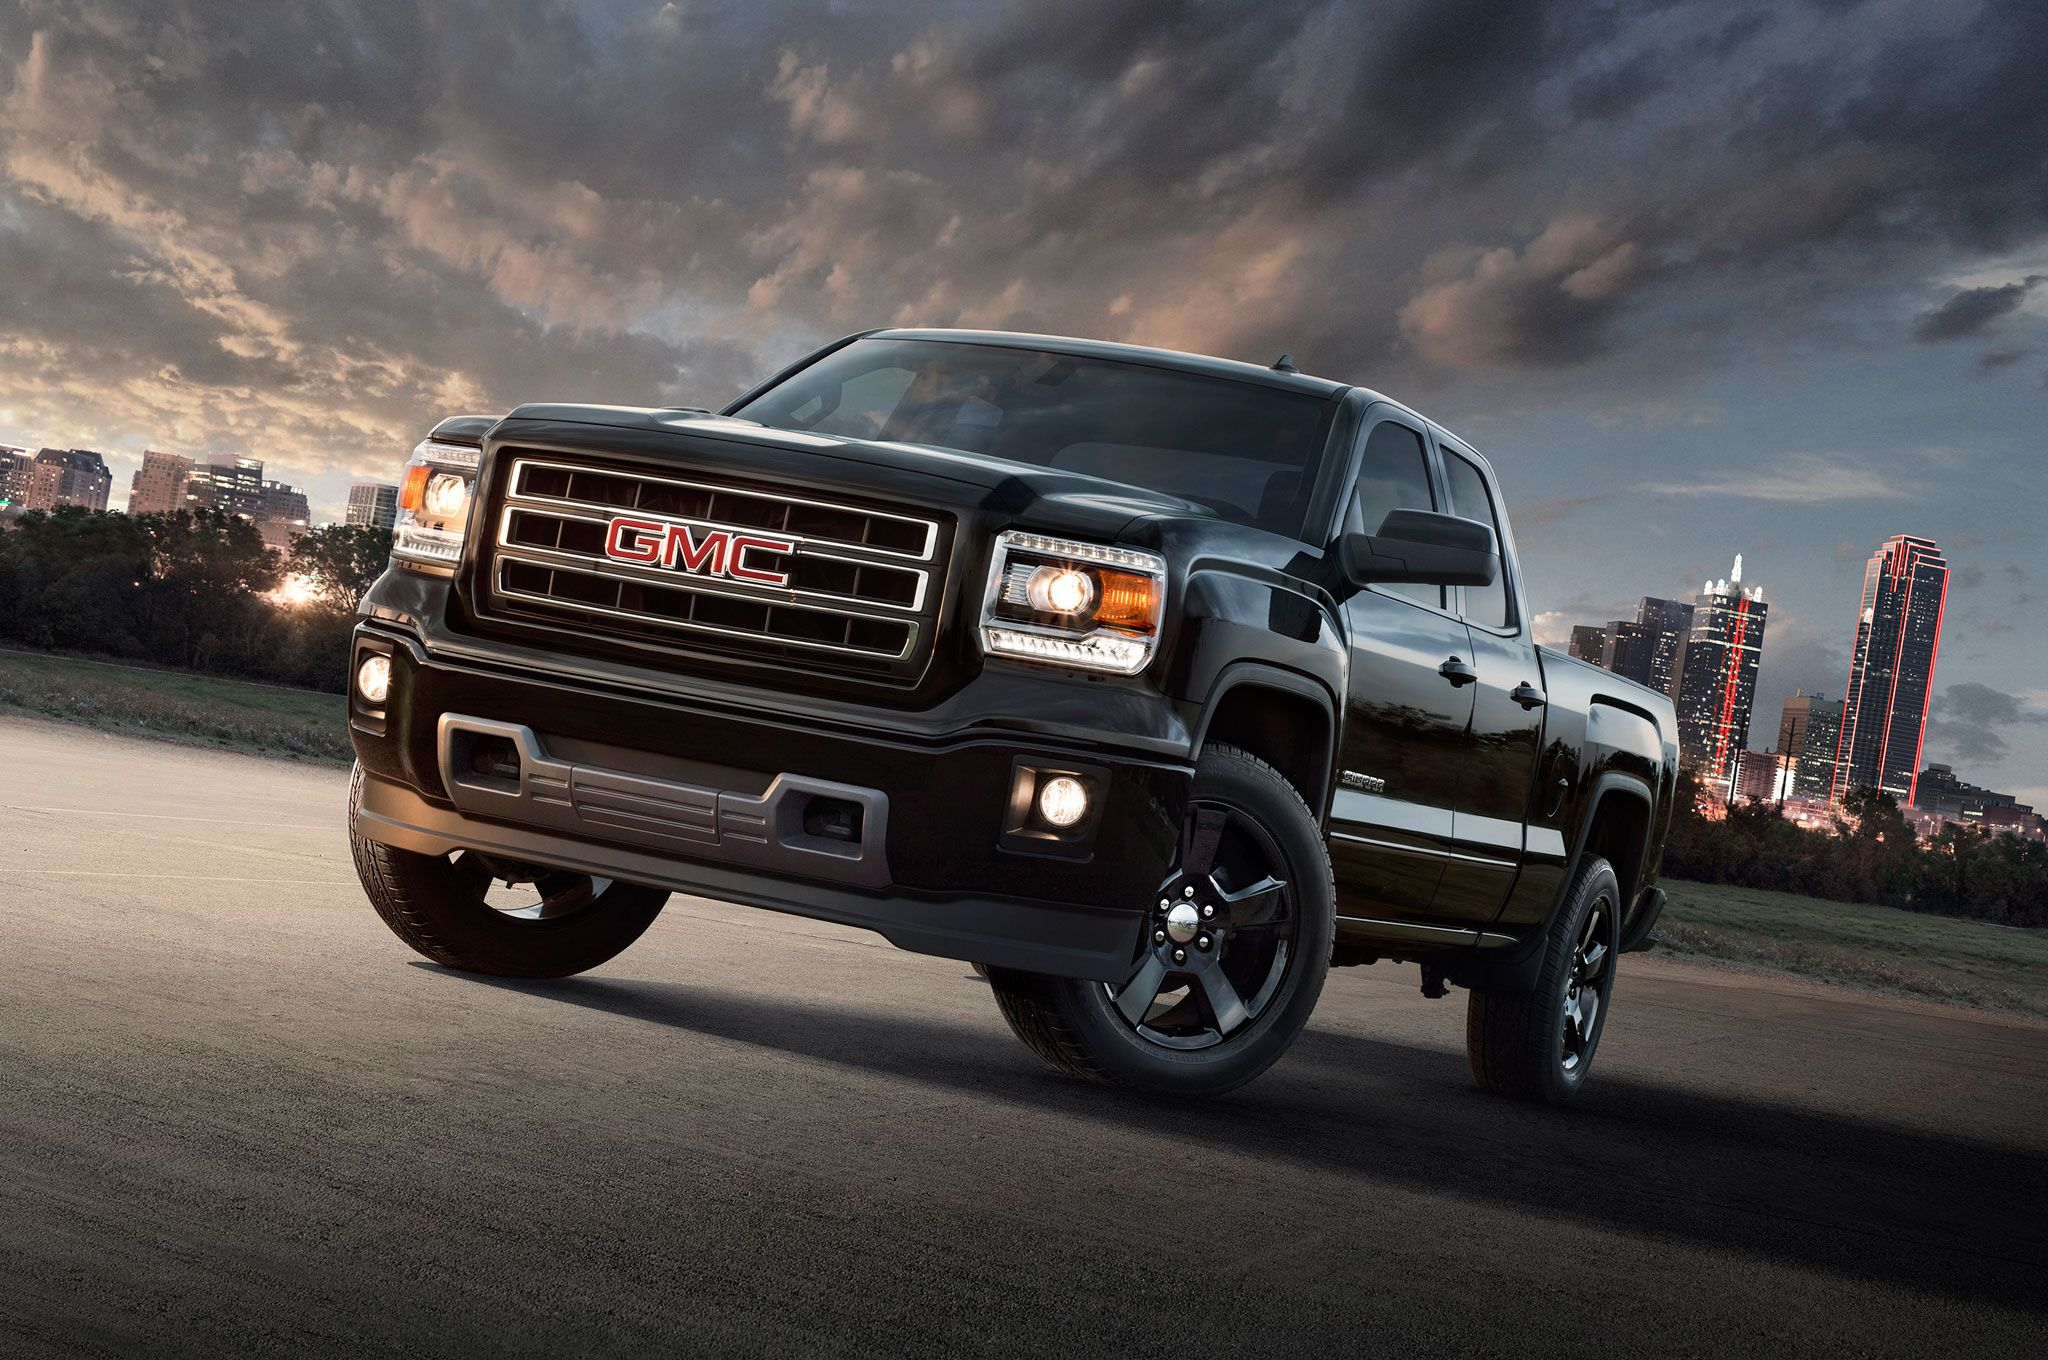 The 2015 gmc sierra elevation edition is being called a sport truck by gm s delusional marketers can we please cut the crap already